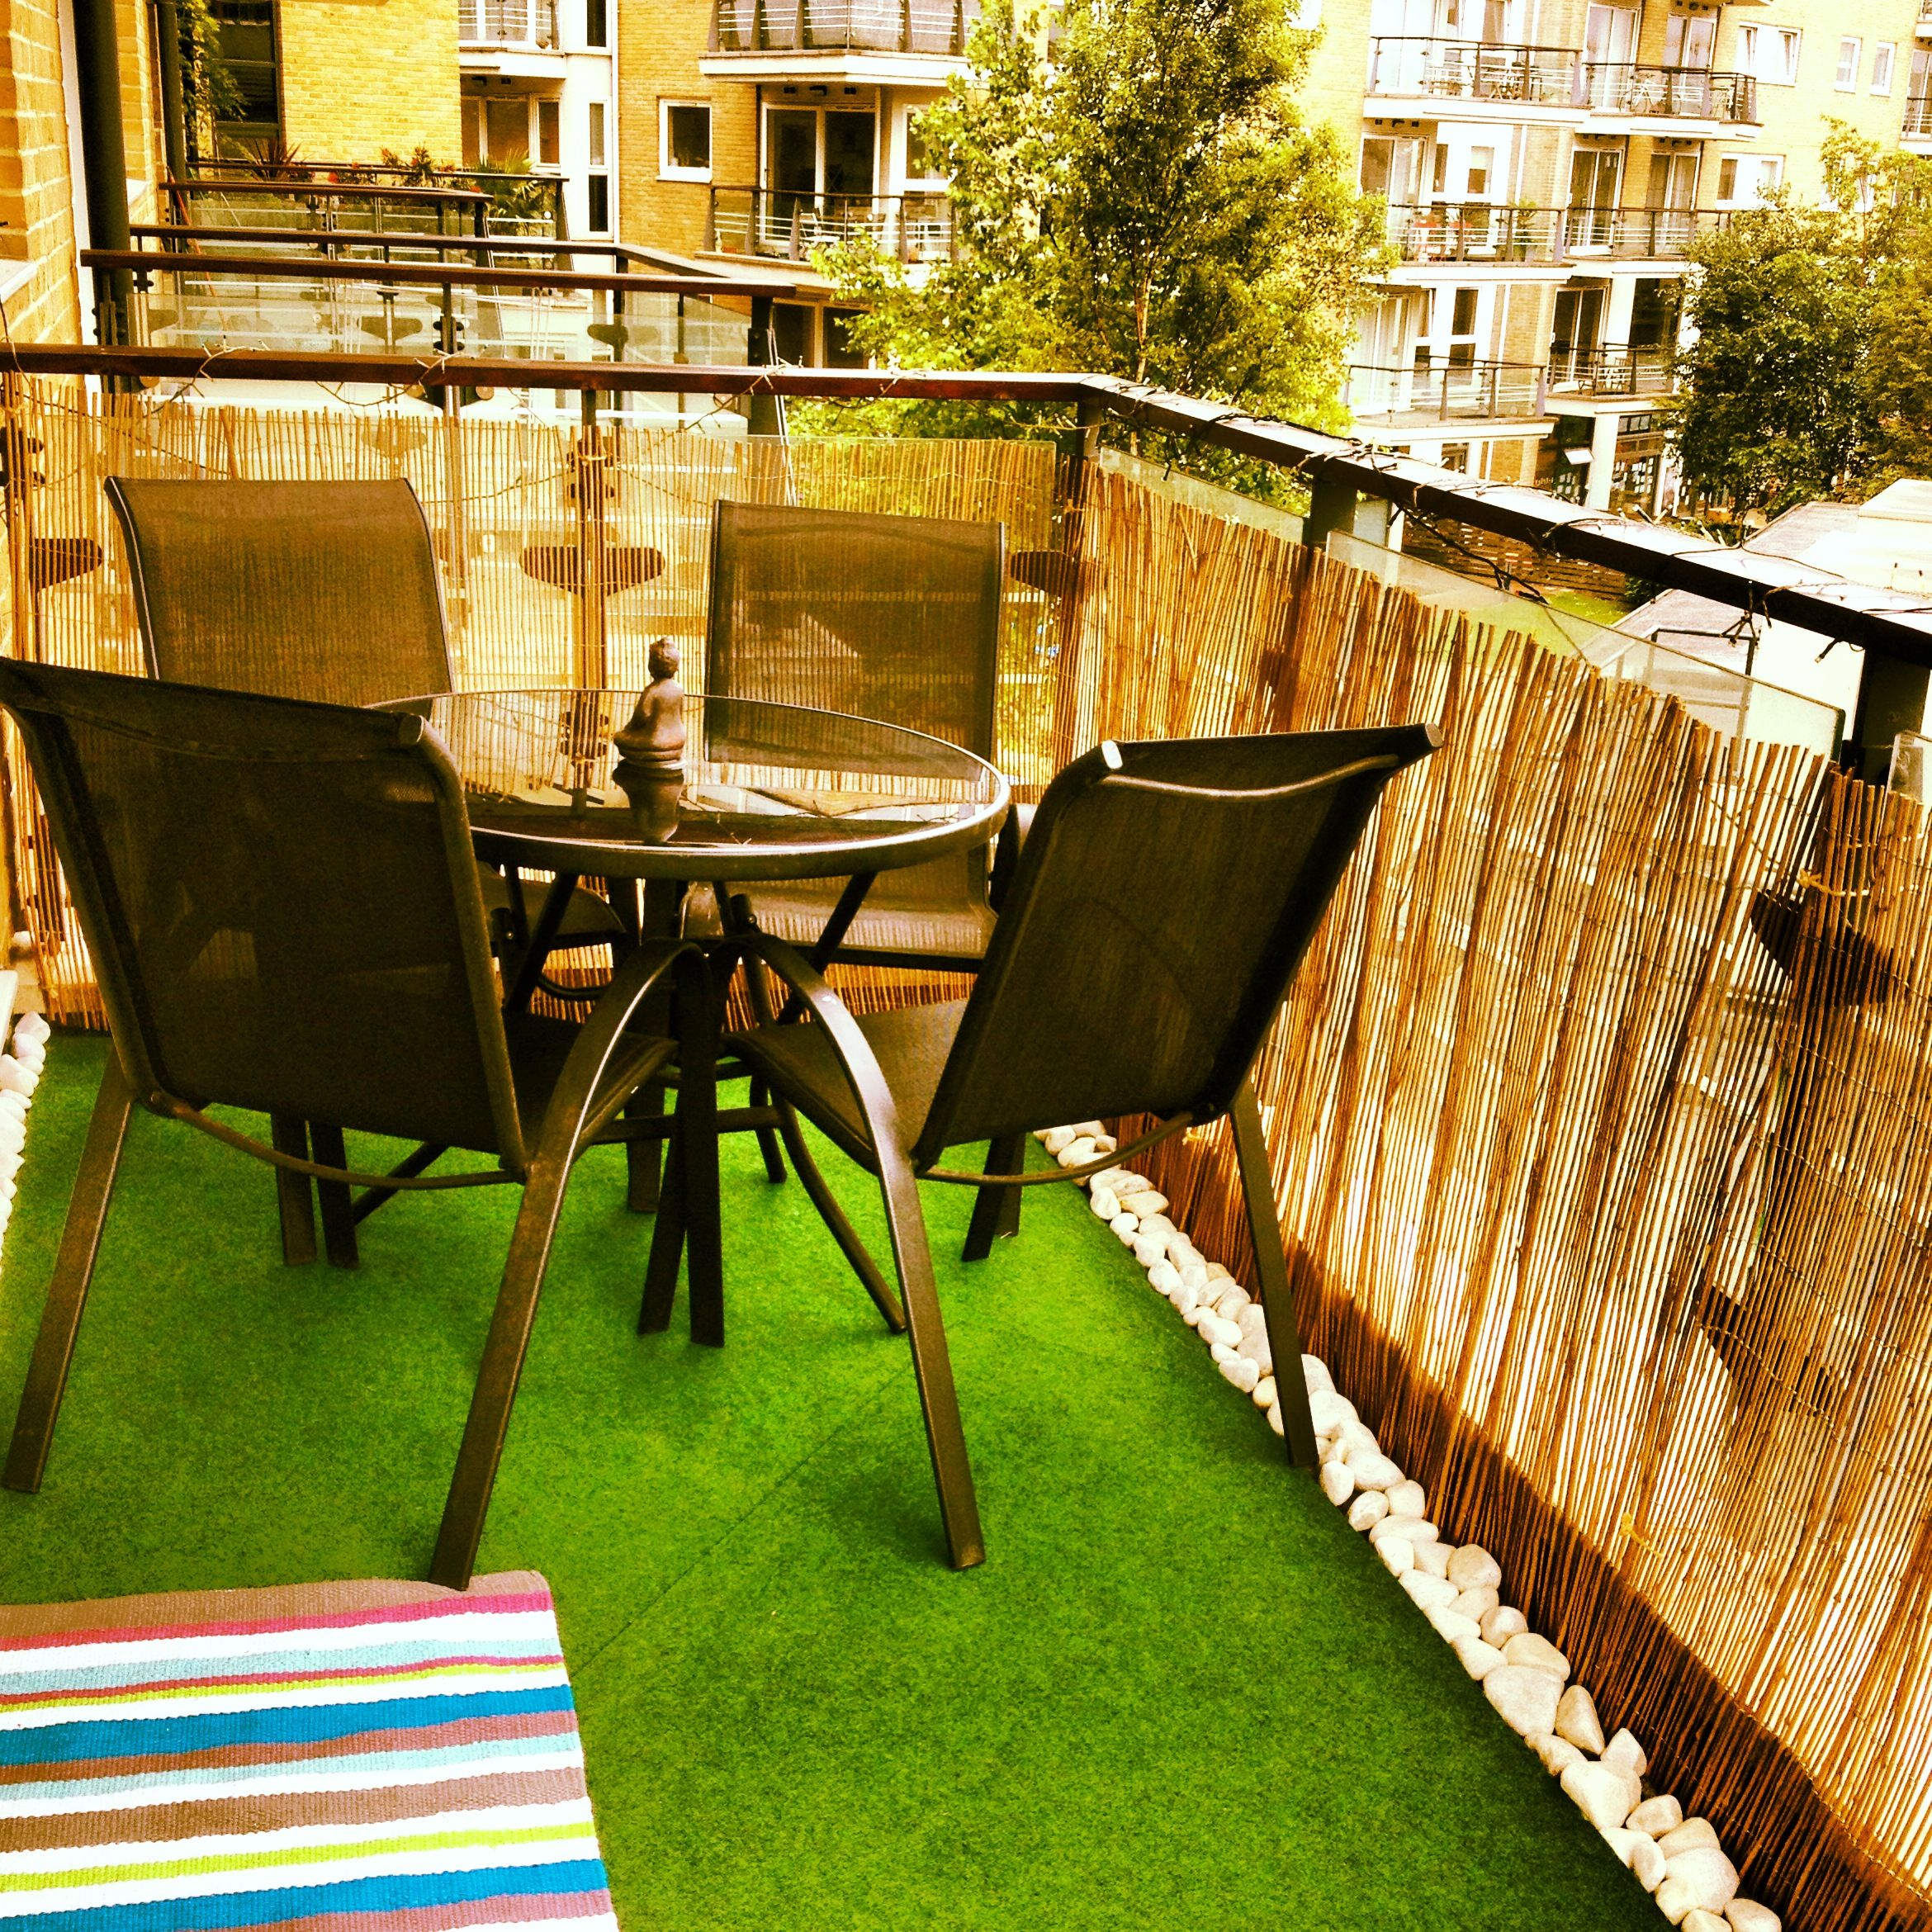 Apartment patio privacy ideas - Find This Pin And More On Ideas For Yoga Space Privacy On Balcony